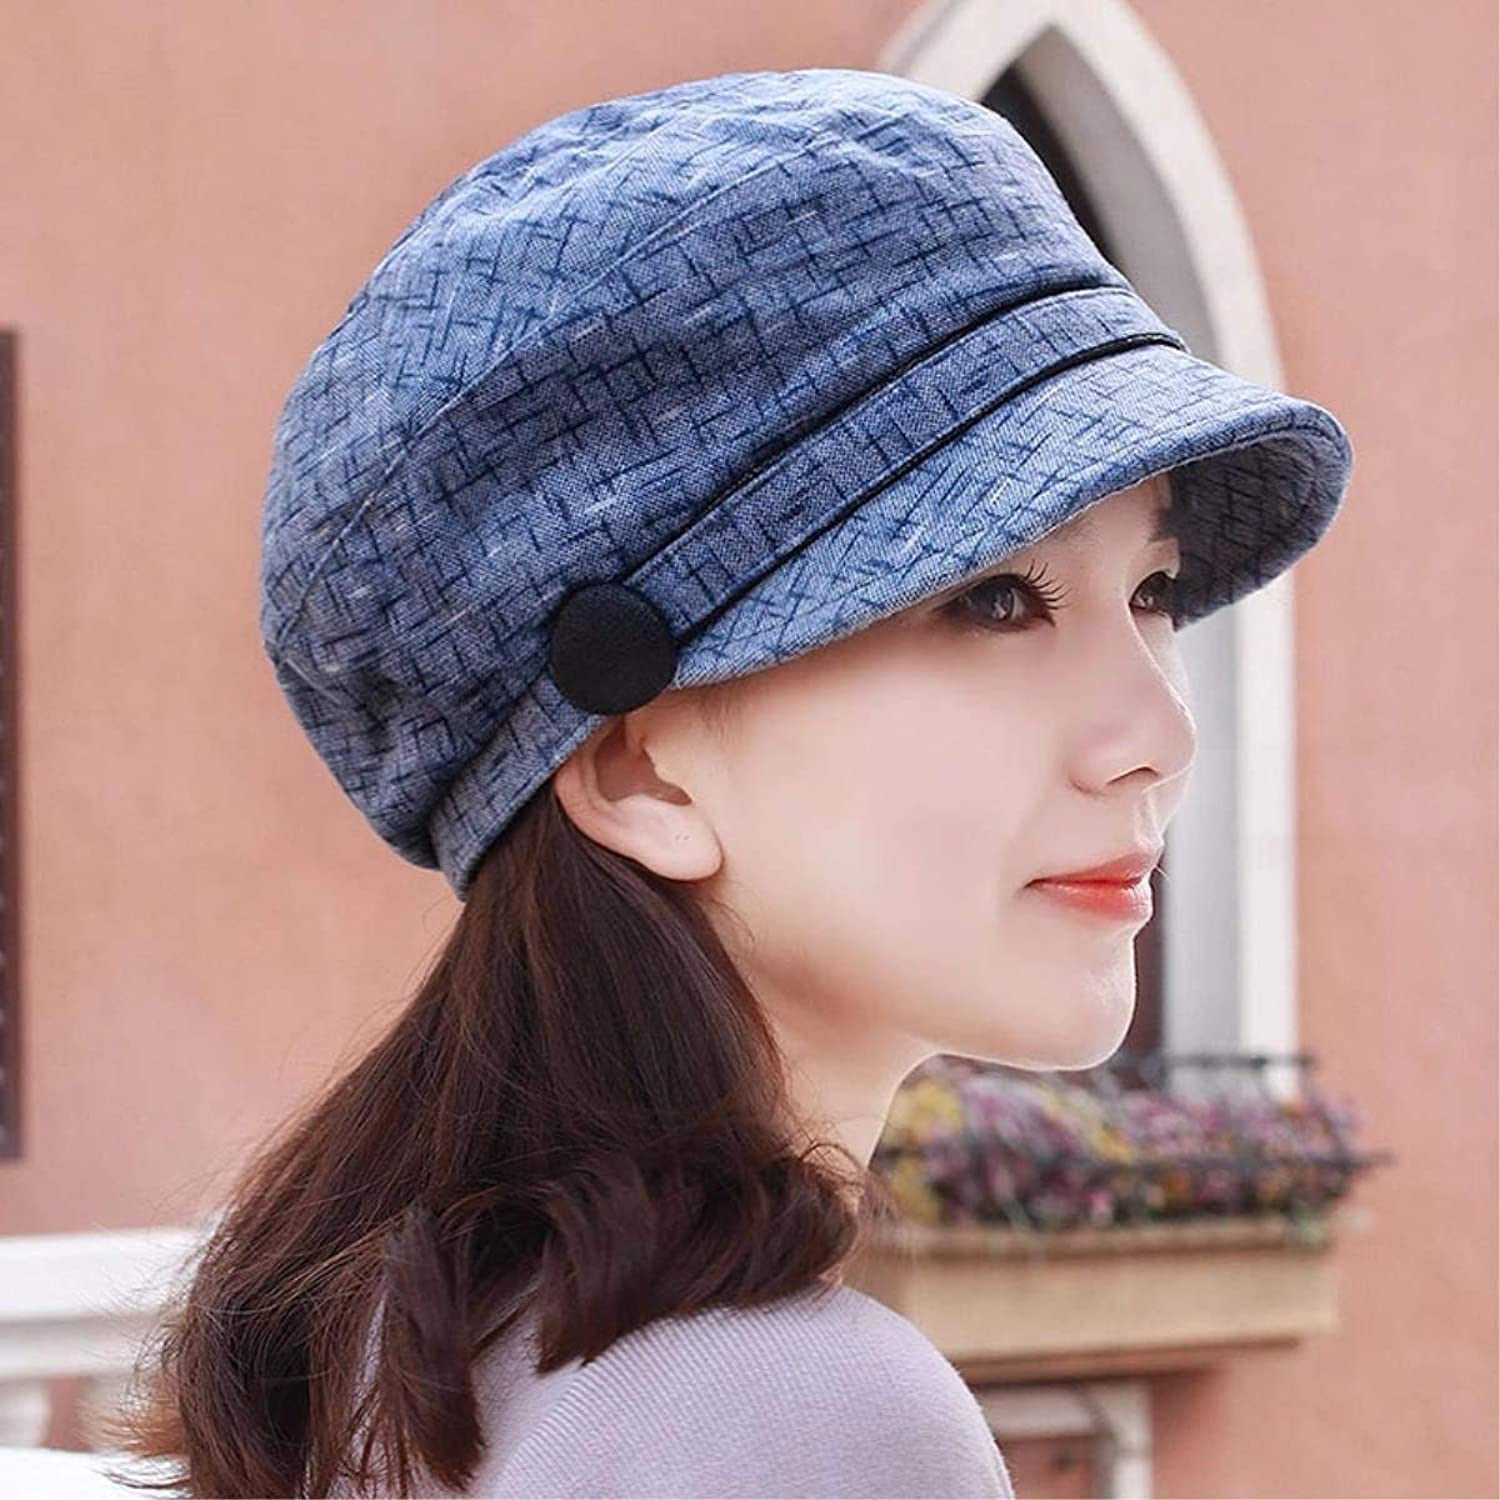 Chuiqingnet The spring and summer new stamp hard hat along the thin beret cap outdoor hat elderly cap mother cap wife Cap